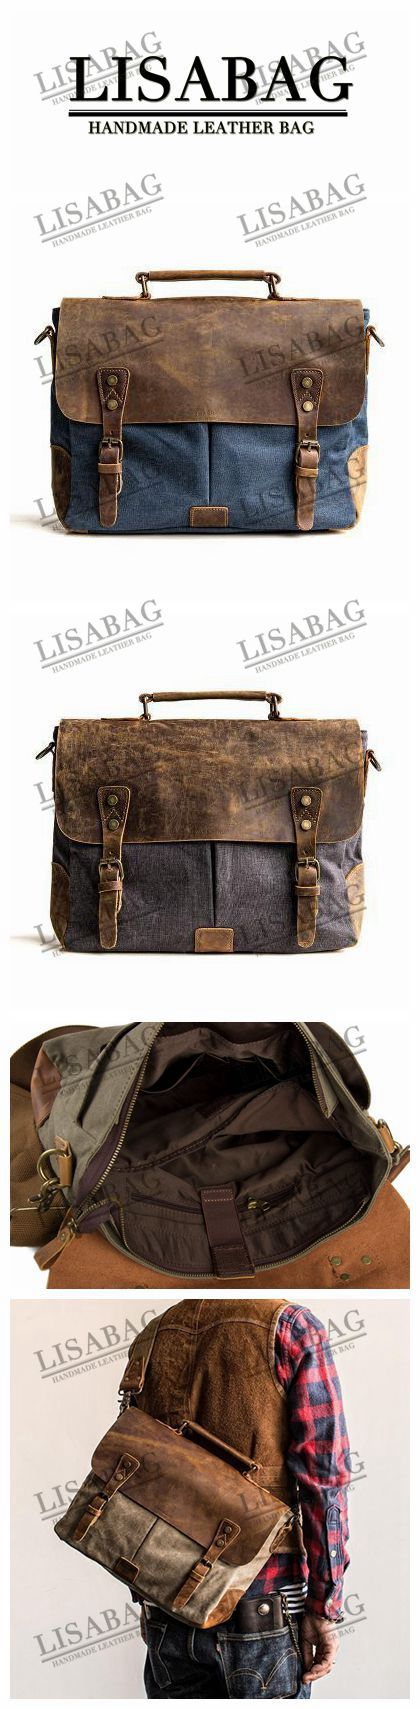 Handmade Dark Blue Waxed Canvas Leather Briefcase Messenger Bag 13'' Laptop Bag 1807